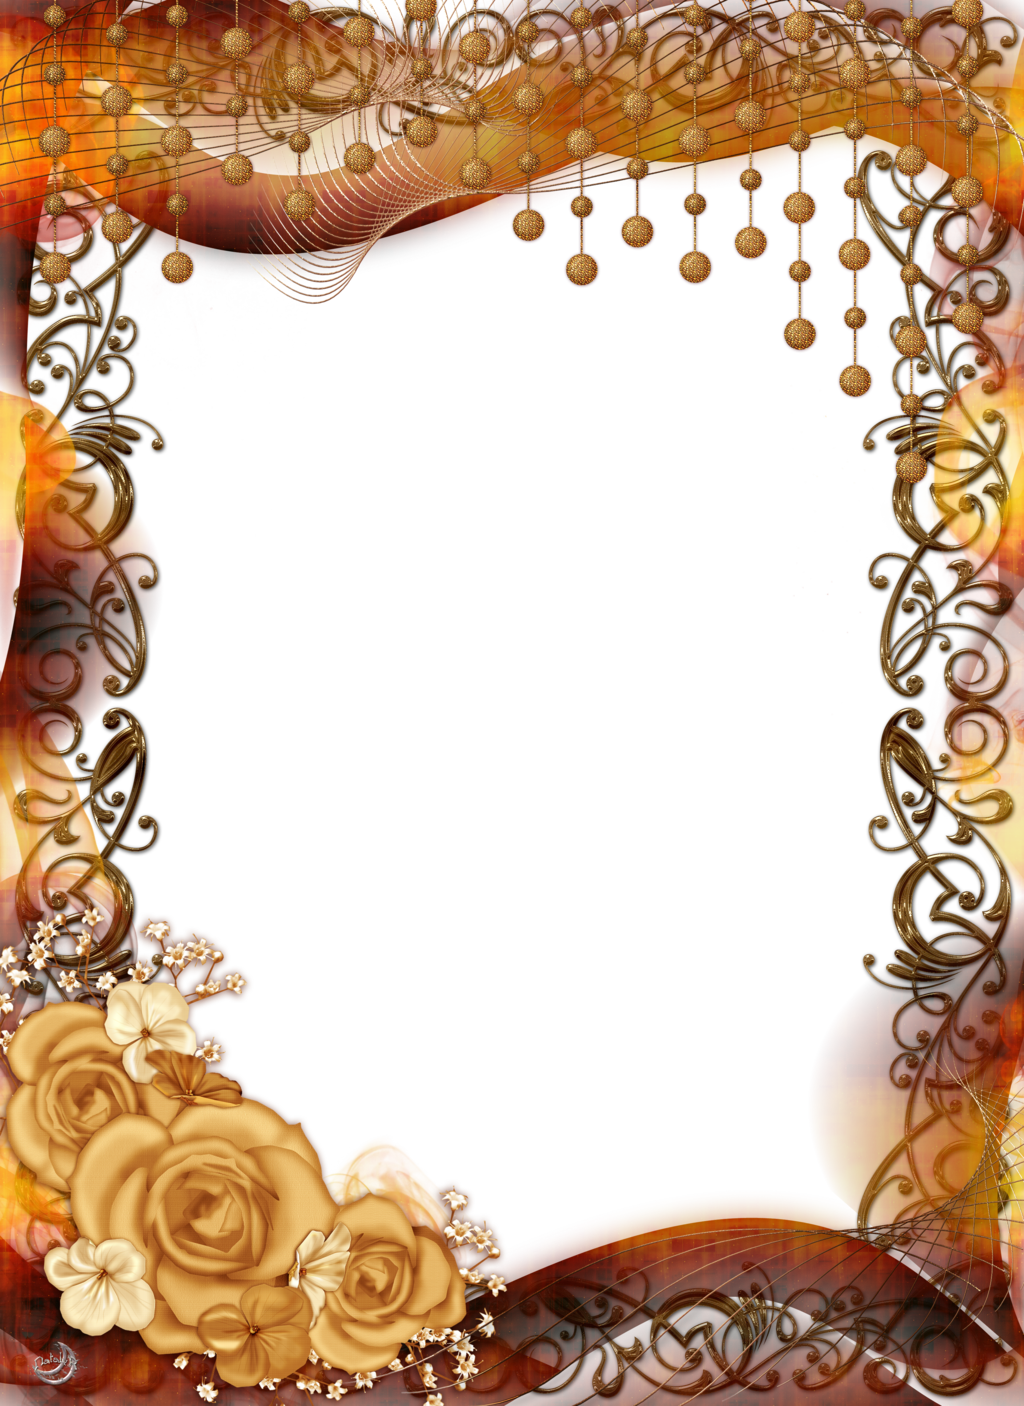 frame with roses and ornaments by lyottadeviantartcom on deviantart